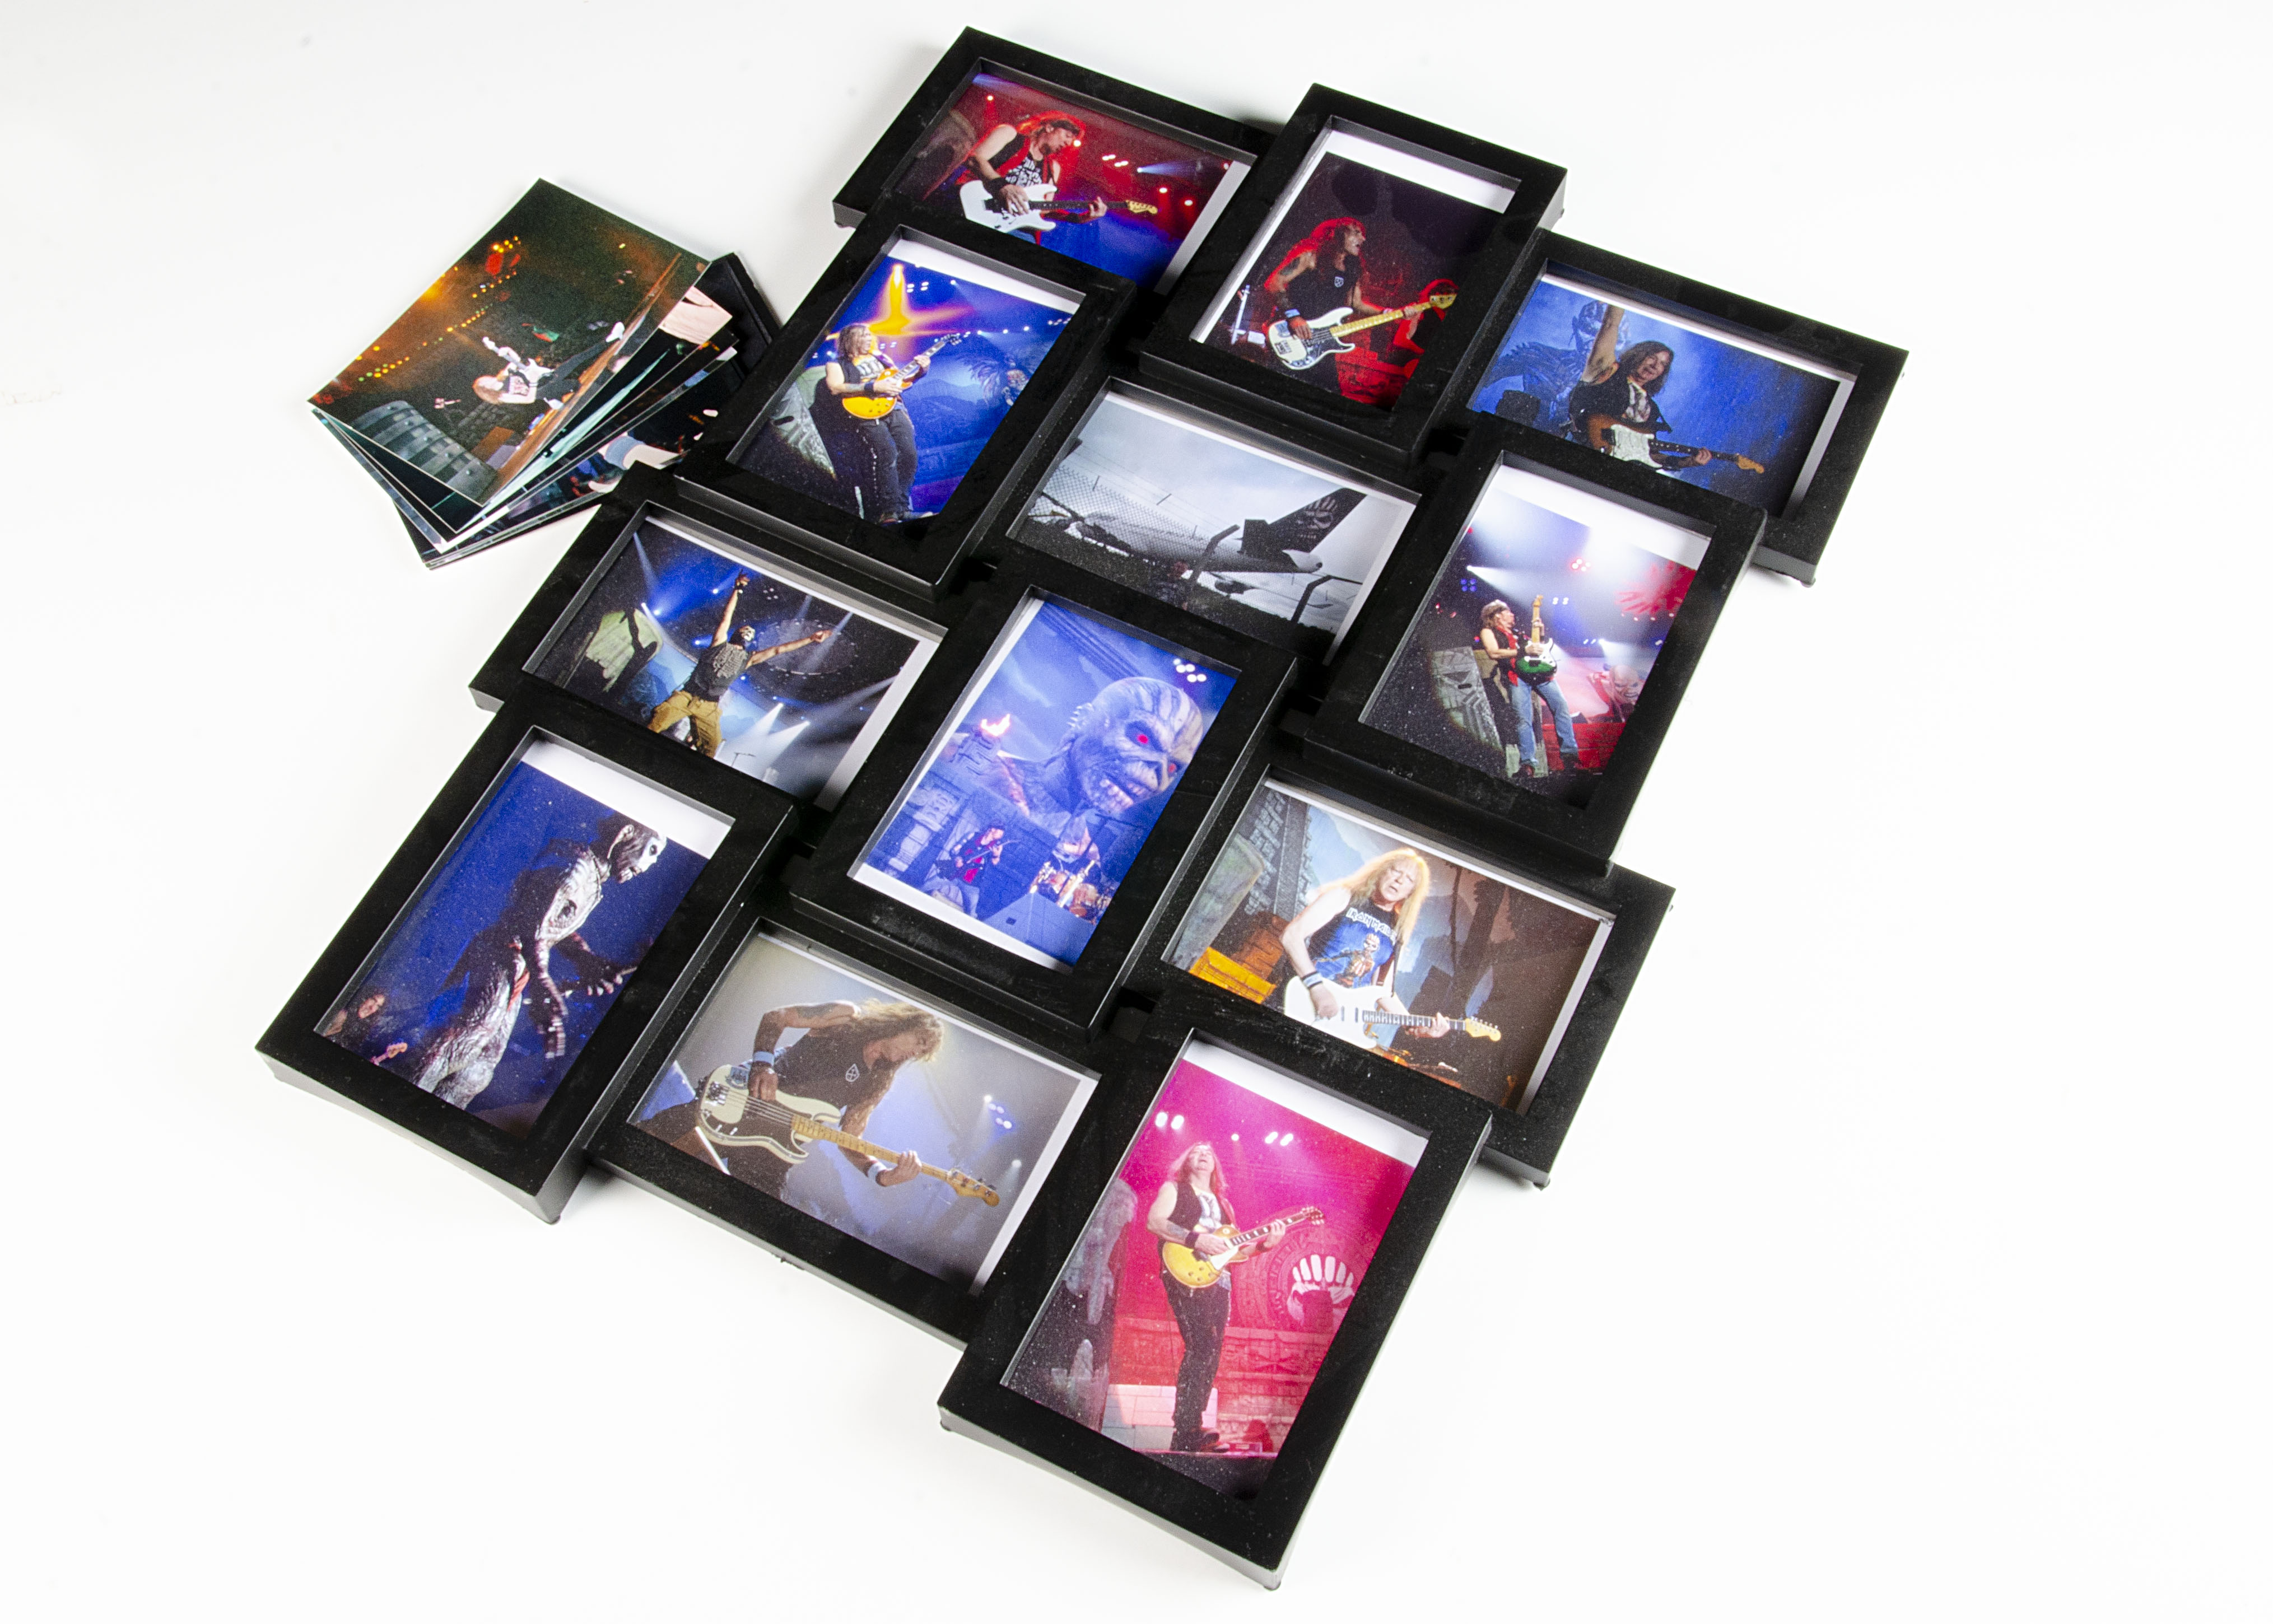 Iron Maiden Photos, twenty-four colour prints taken by Peter Boden of Iron Maiden, mainly in concert